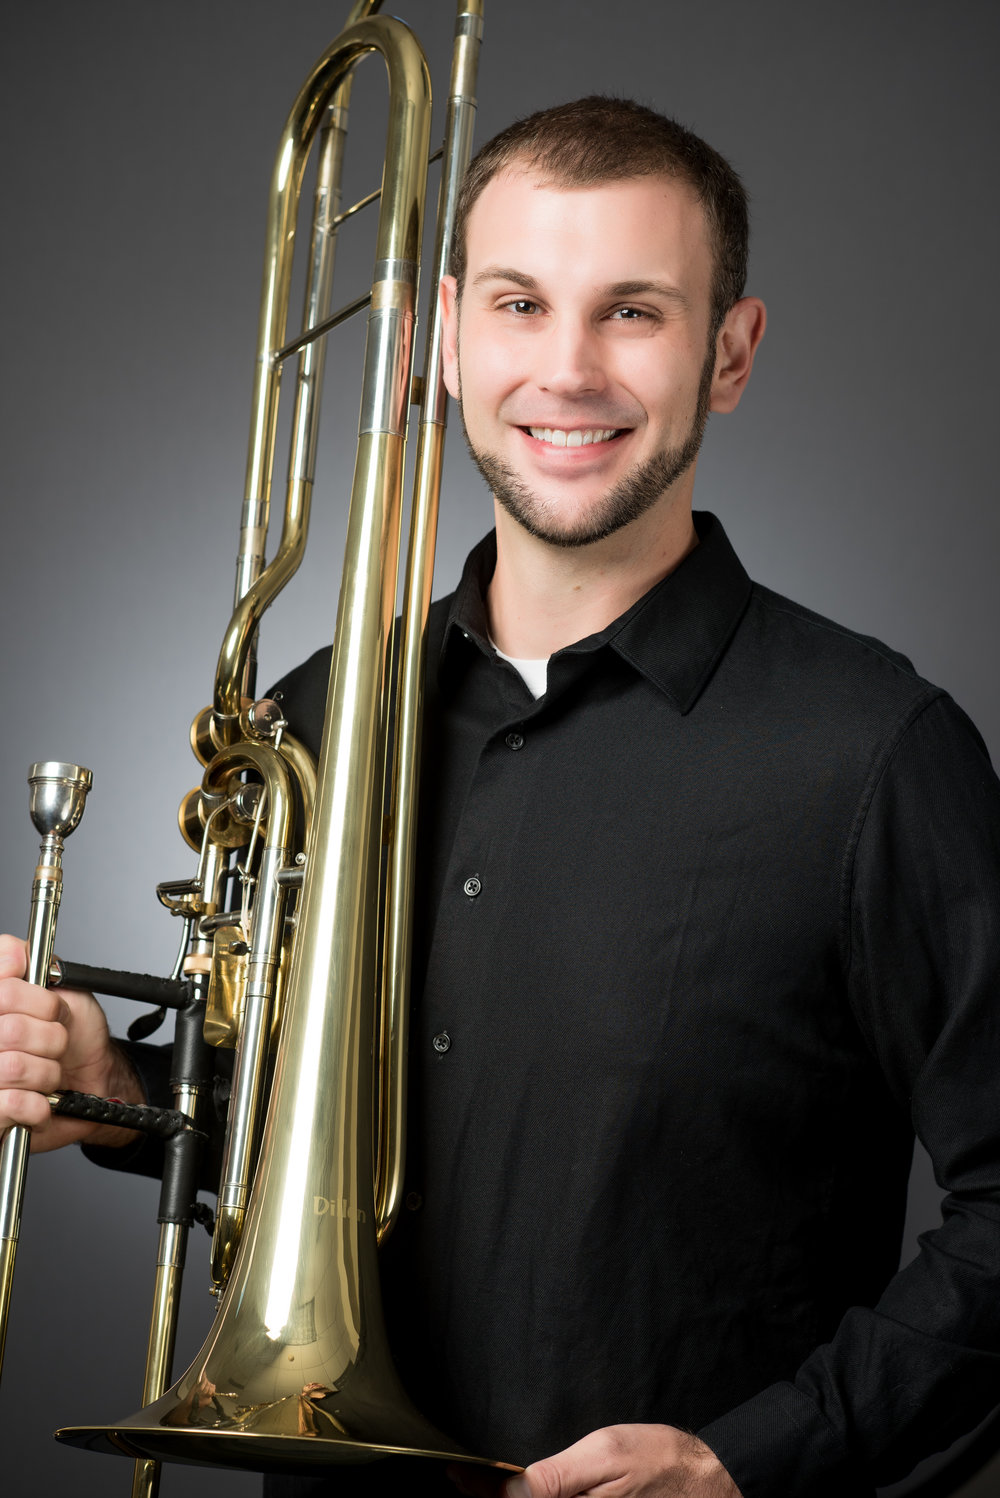 """Eric Henson - Currently residing in Inman South Carolina, Bass Trombonist Eric Henson holds degrees from Western Carolina University, the University of Maryland, College Park, and is currently pursuing his Doctorate of Musical Arts at the University of South Carolina. As an educator, Henson is in demand as a clinician and teacher from Delaware to Georgia. Motivated by a strong desire to cultivate music in young people, he joined the faculty of Limestone College in 2011 and has rapidly grown the low brass studio in both quantity and quality. Ensembles under his direction have given performances at the 2016 International Tuba Euphonium Conference, the 2017 South Carolina Music Educator's Conference, and the 2017 Great American Brass Band Festival. His students have won positions in various military bands, summer festivals, and high school honor ensembles in Maryland, North Carolina, and South Carolina.Henson is an active performer across the Southeast and holds principal positions in the Augusta Symphony, the Spartanburg Philharmonic Orchestra, and the newly formed Rock Hill Symphony. From 2008 to 2015, he held the position of bass trombonist with The King's Brass and can be heard on many of their recent recordings on the Summit Records label. Additionally, he has performed on several occasions with the Atlanta Symphony Orchestra, Charlotte Symphony, and the North Carolina Symphony Orchestra. As a soloist, he was the grand prize winner in the 2017 International Women's Brass Conference solo competition and gave the world premier of Ryan Williams' work """"It Seemed Like a Good Idea at the Time"""" at the 2018 International Trombone Festival. In January 2019, Henson has accepted an invitation to perform on the faculty showcase recital at the Big 12 Trombone Conference at Texas Tech UniversityMr. Henson is an S.E. Shires Performing Artist.A complete CV is available here"""